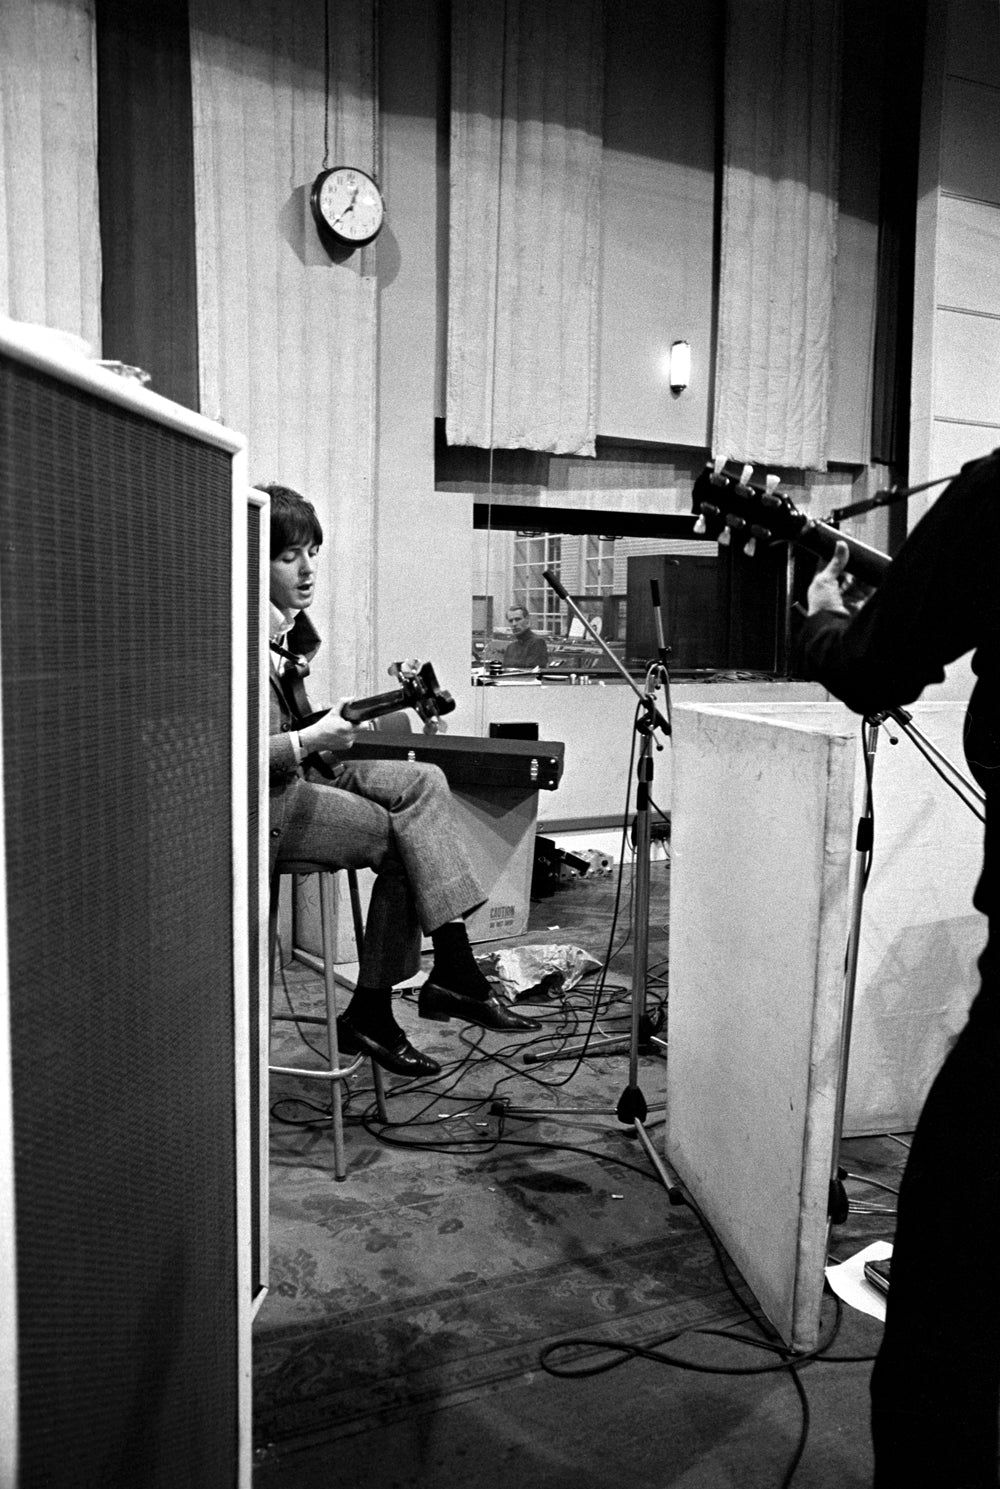 Paul McCartney recording bass during Revolver sessions as seen from George Martin's vantage point